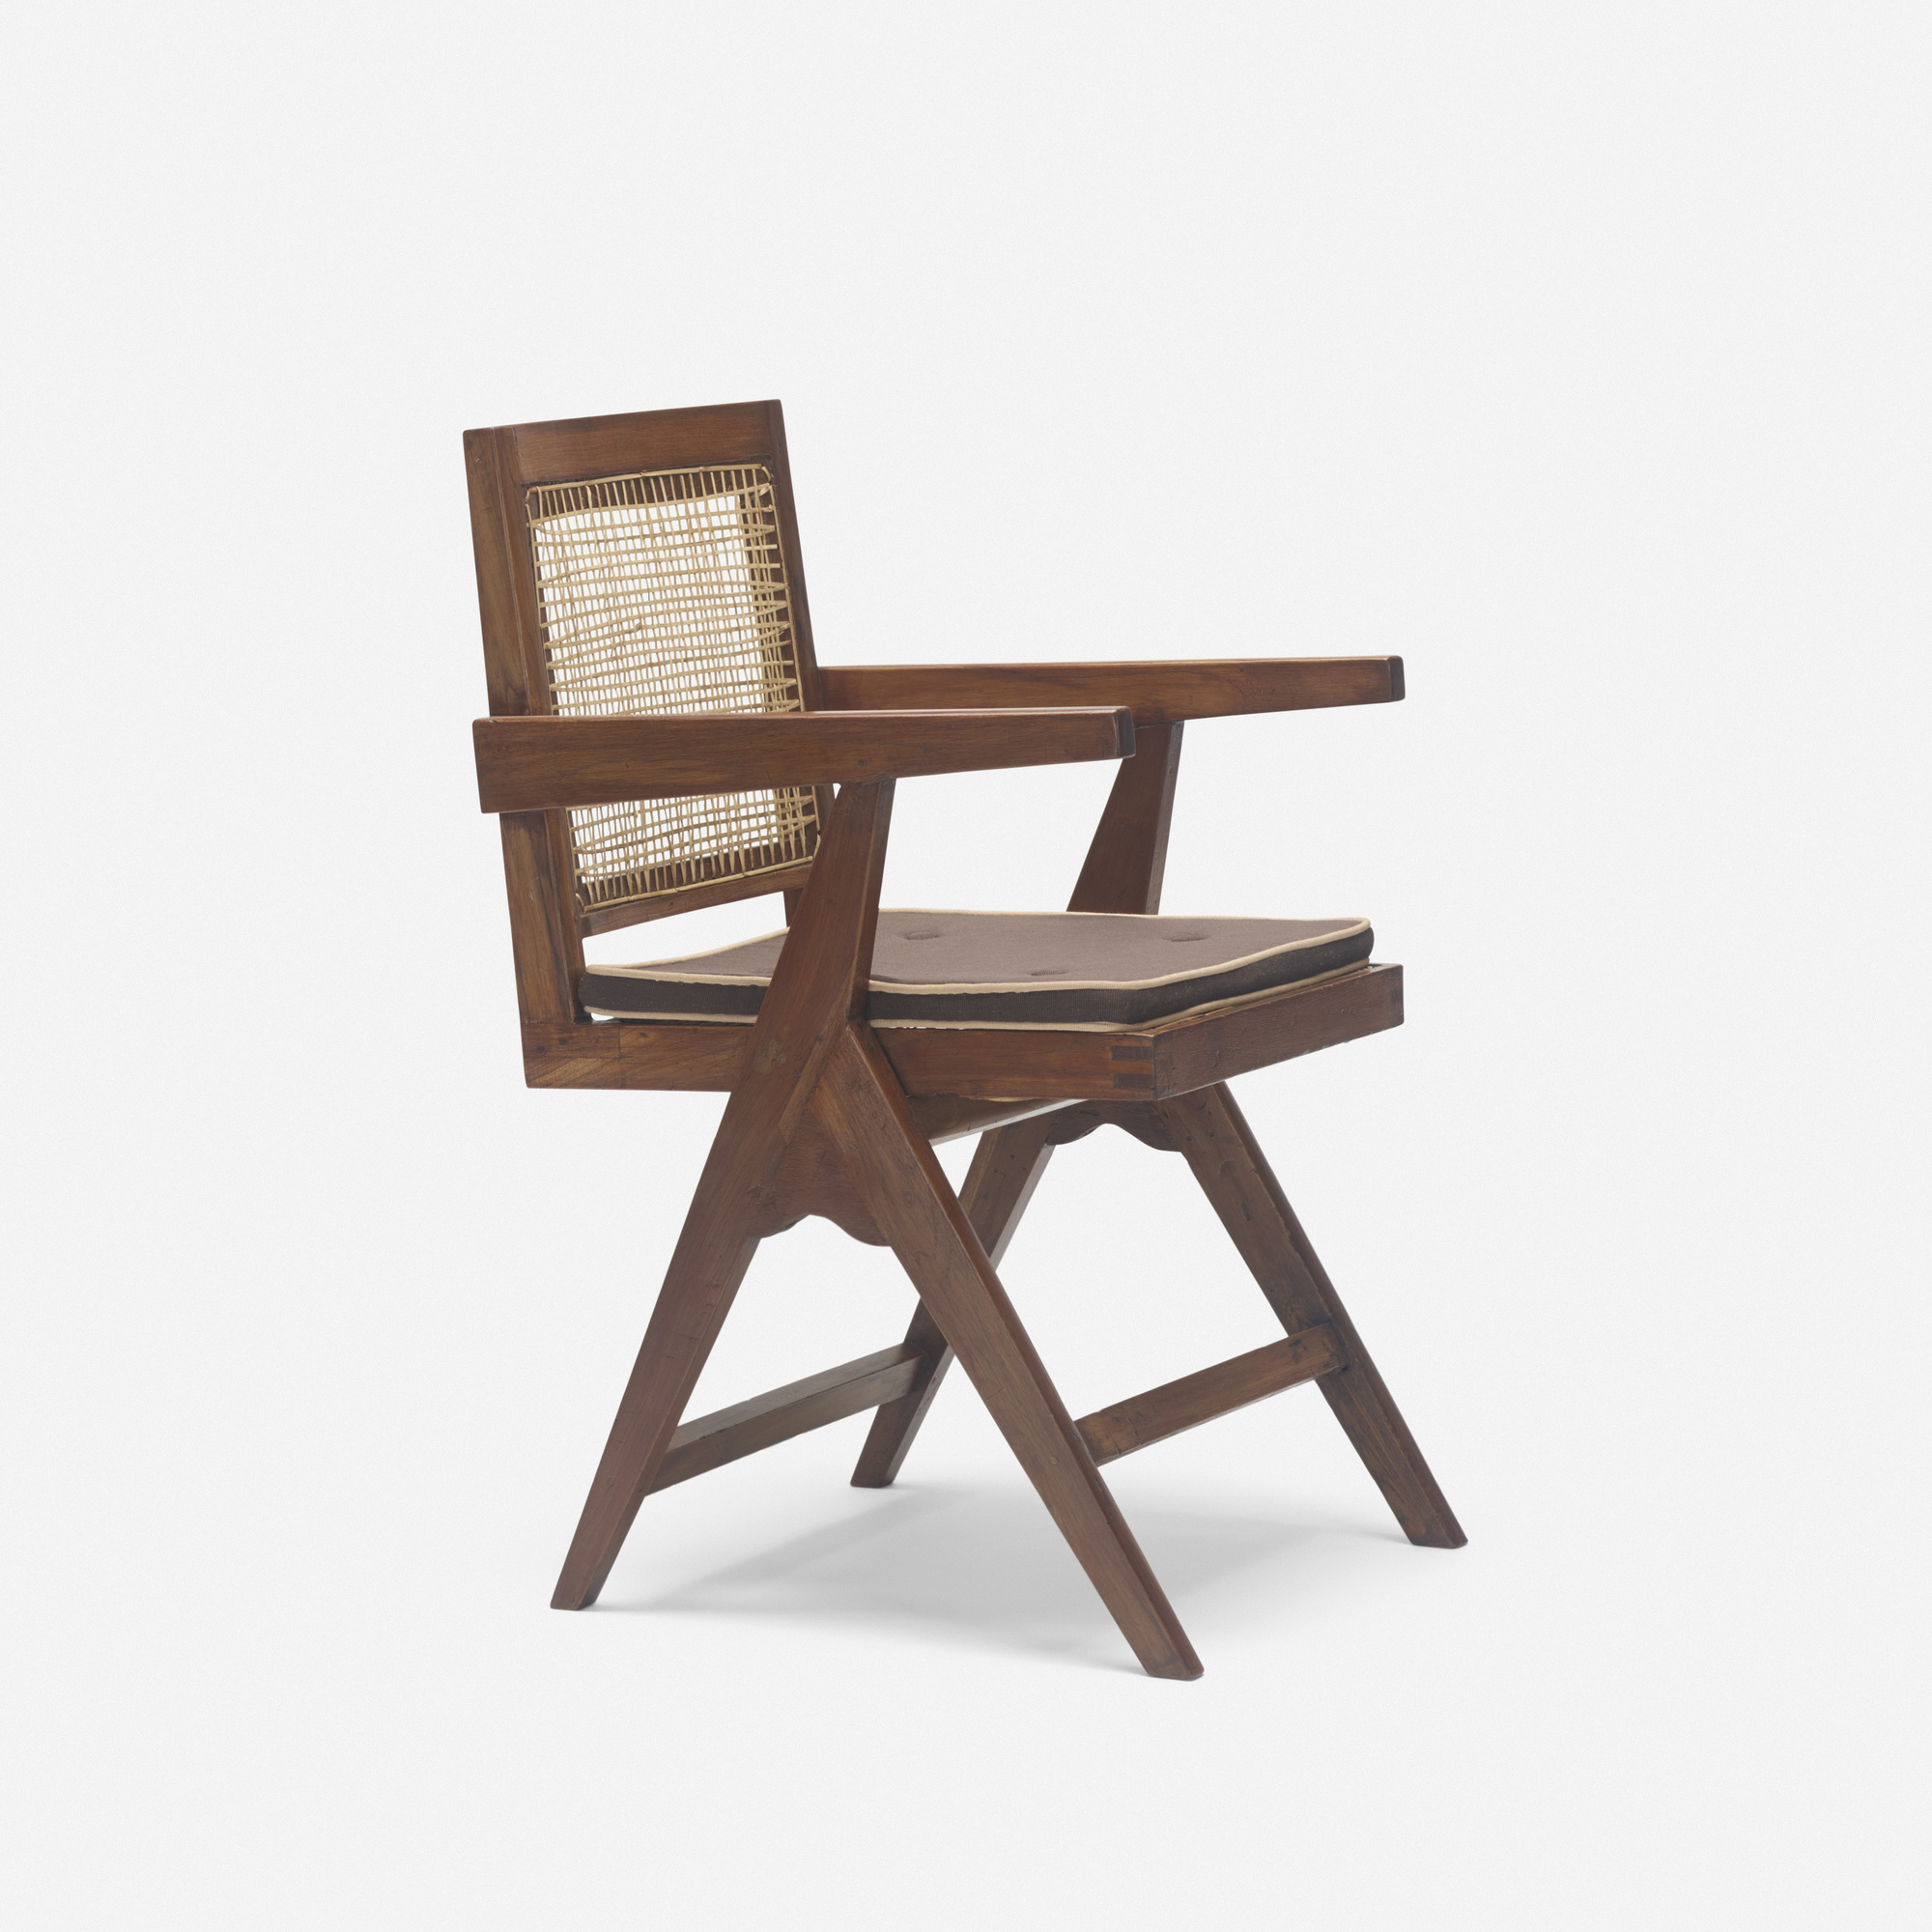 124: Pierre Jeanneret / armchair from Chandigarh (1 of 3)